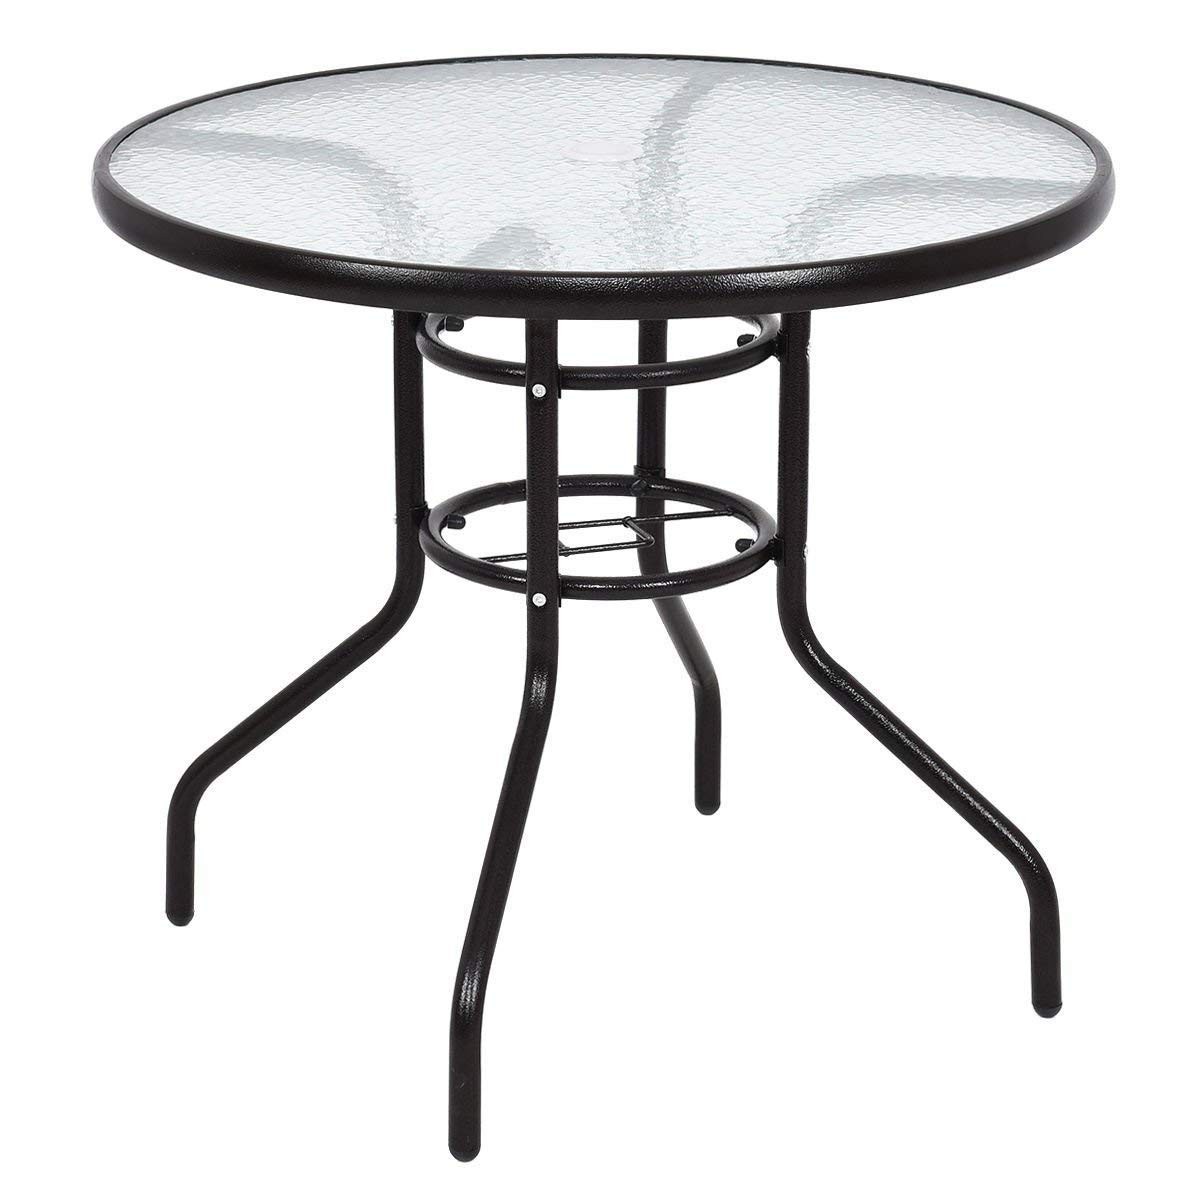 STS SUPPLIES LTD Low Circular Coffee Table Garden Outdoor Room Patio Glass Top Breakfast Metal Table & eBook AllTim3Shopping.